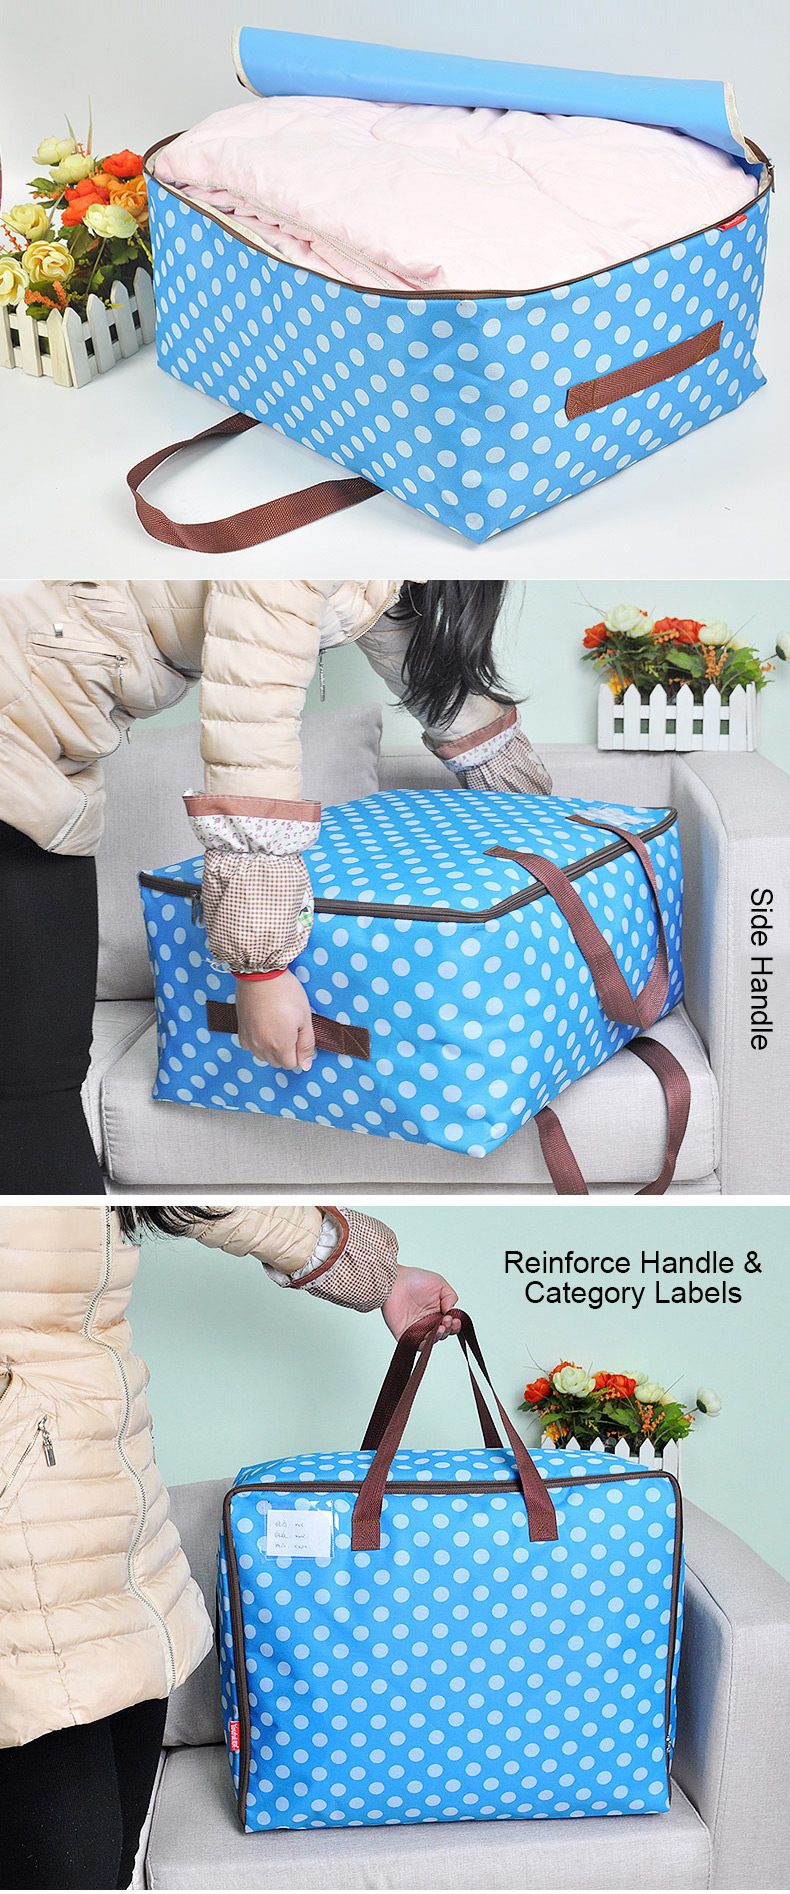 Honana HN-QB02 50L/72L/100L Large Storage Bag Fabric Clothes Bag Travel camping Bag Waterproof Quilt Organizer